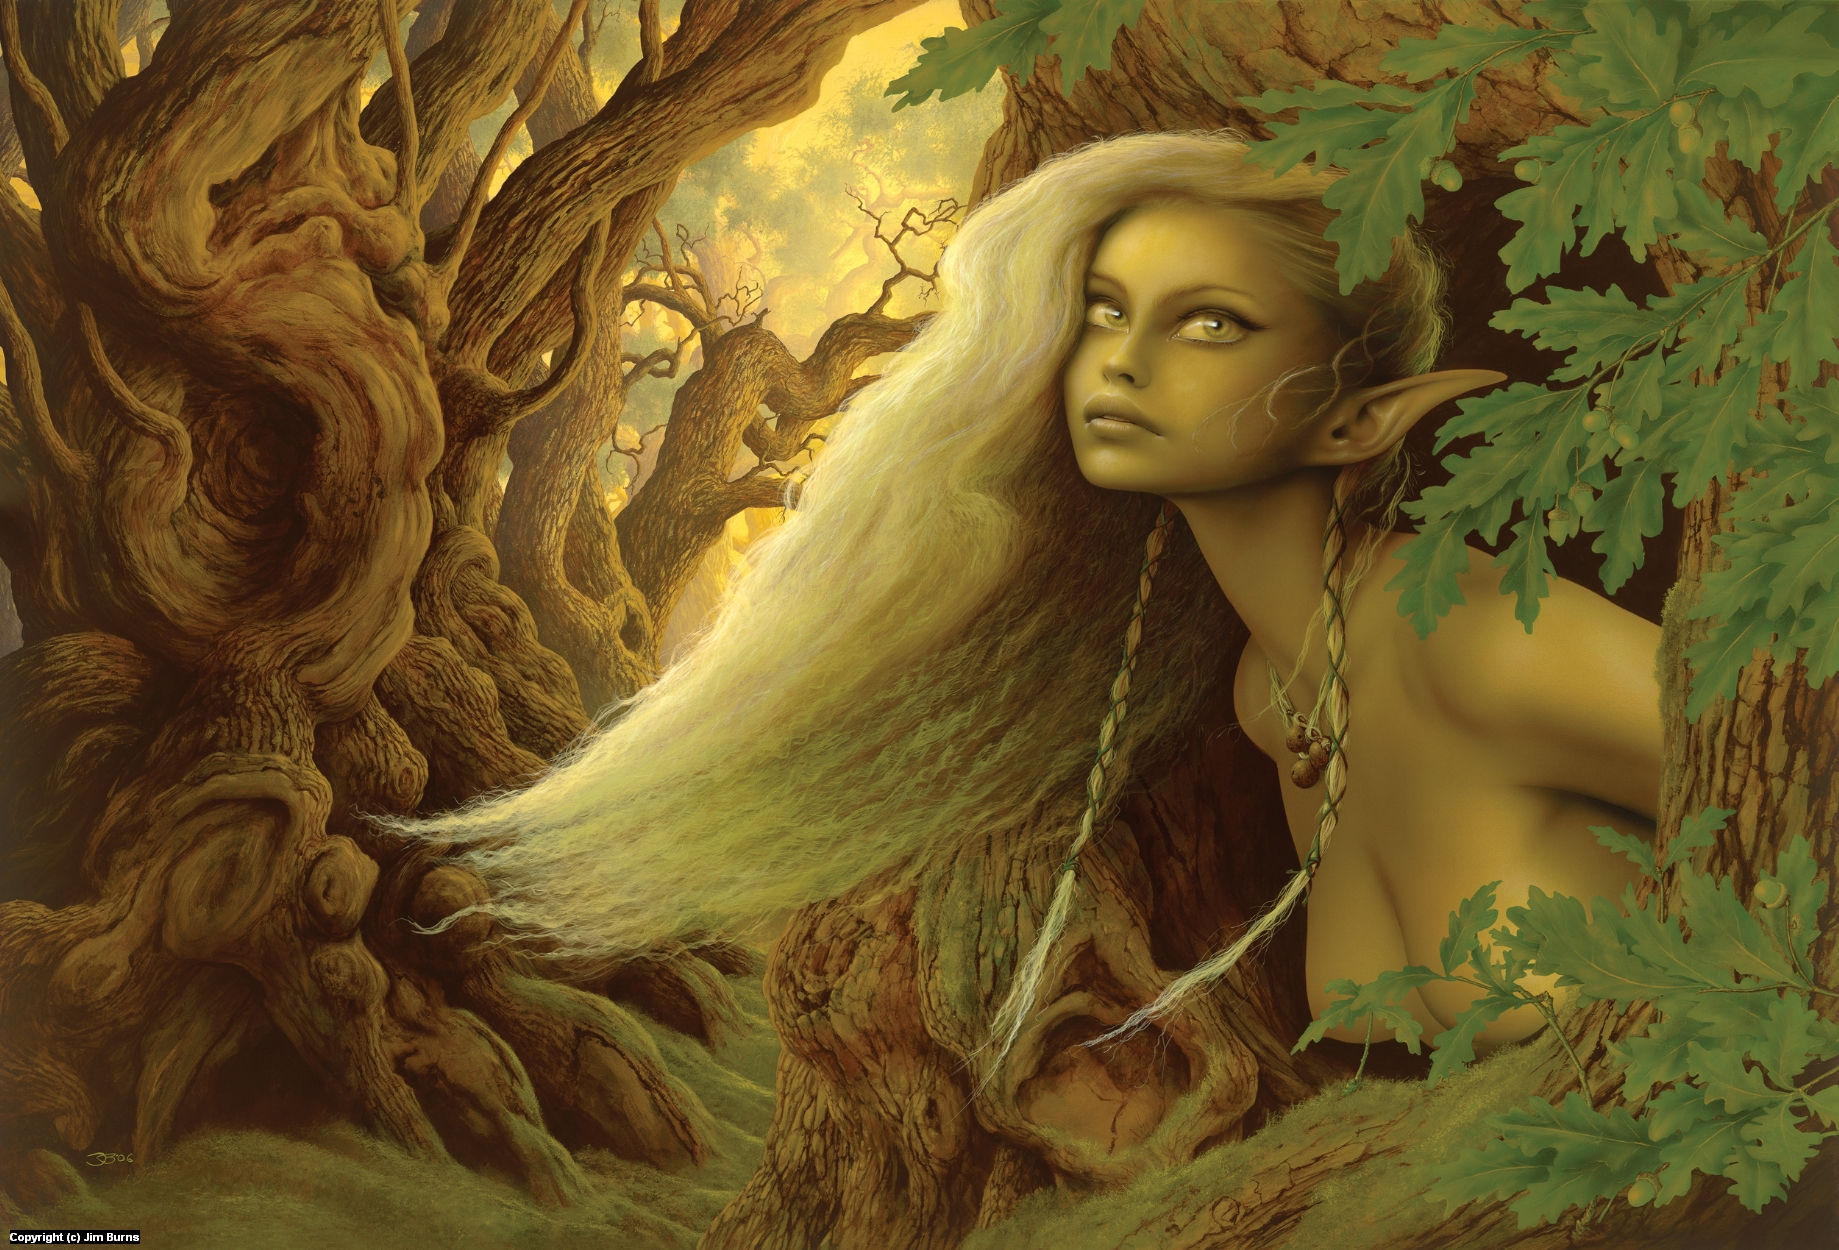 'The Dryad of the Oaks' Artwork by Jim Burns